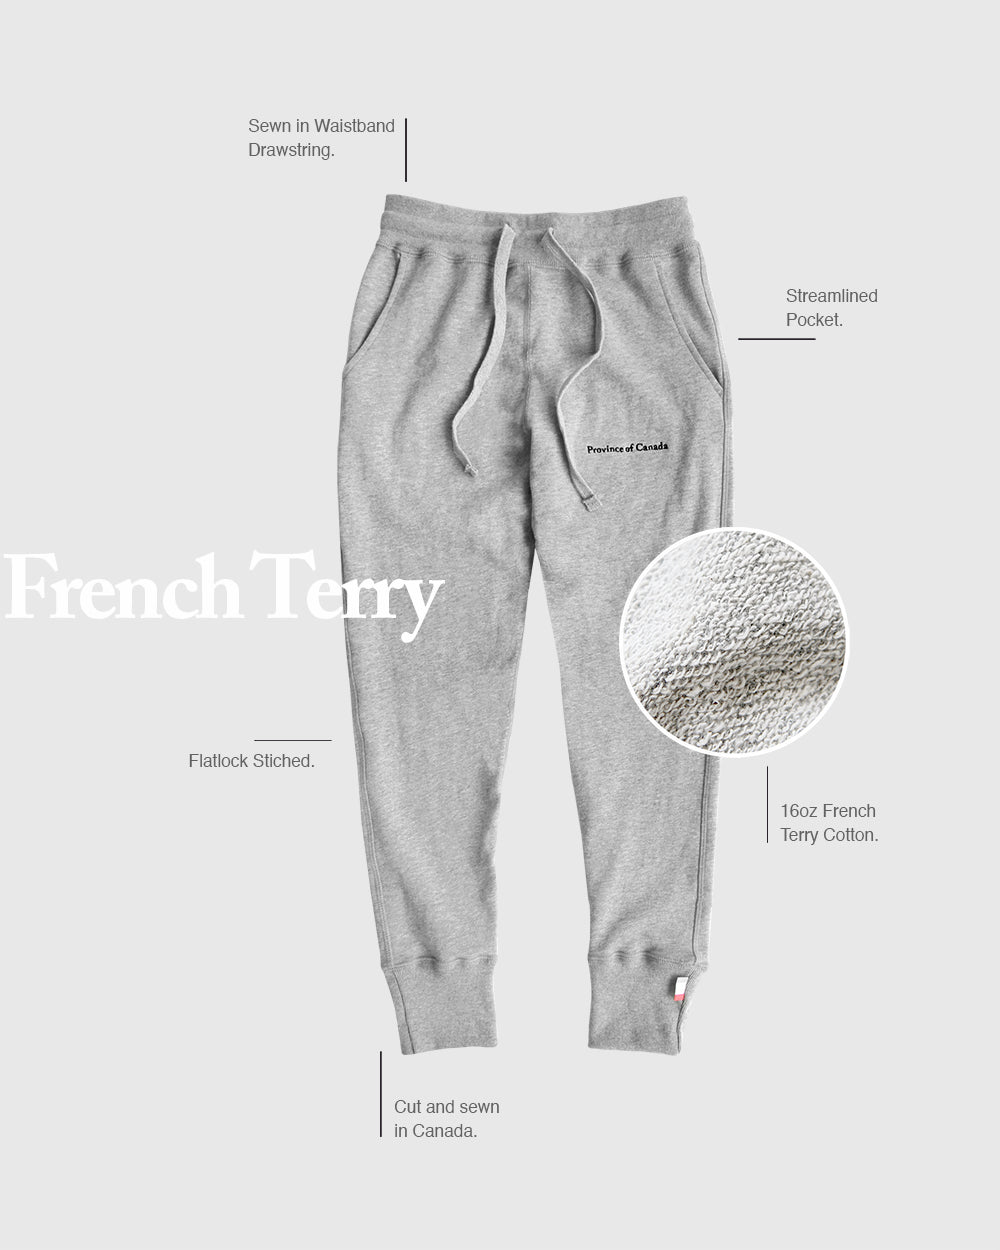 Province of Canada - Sweatpant Guide - Made in Canada Sweatpants